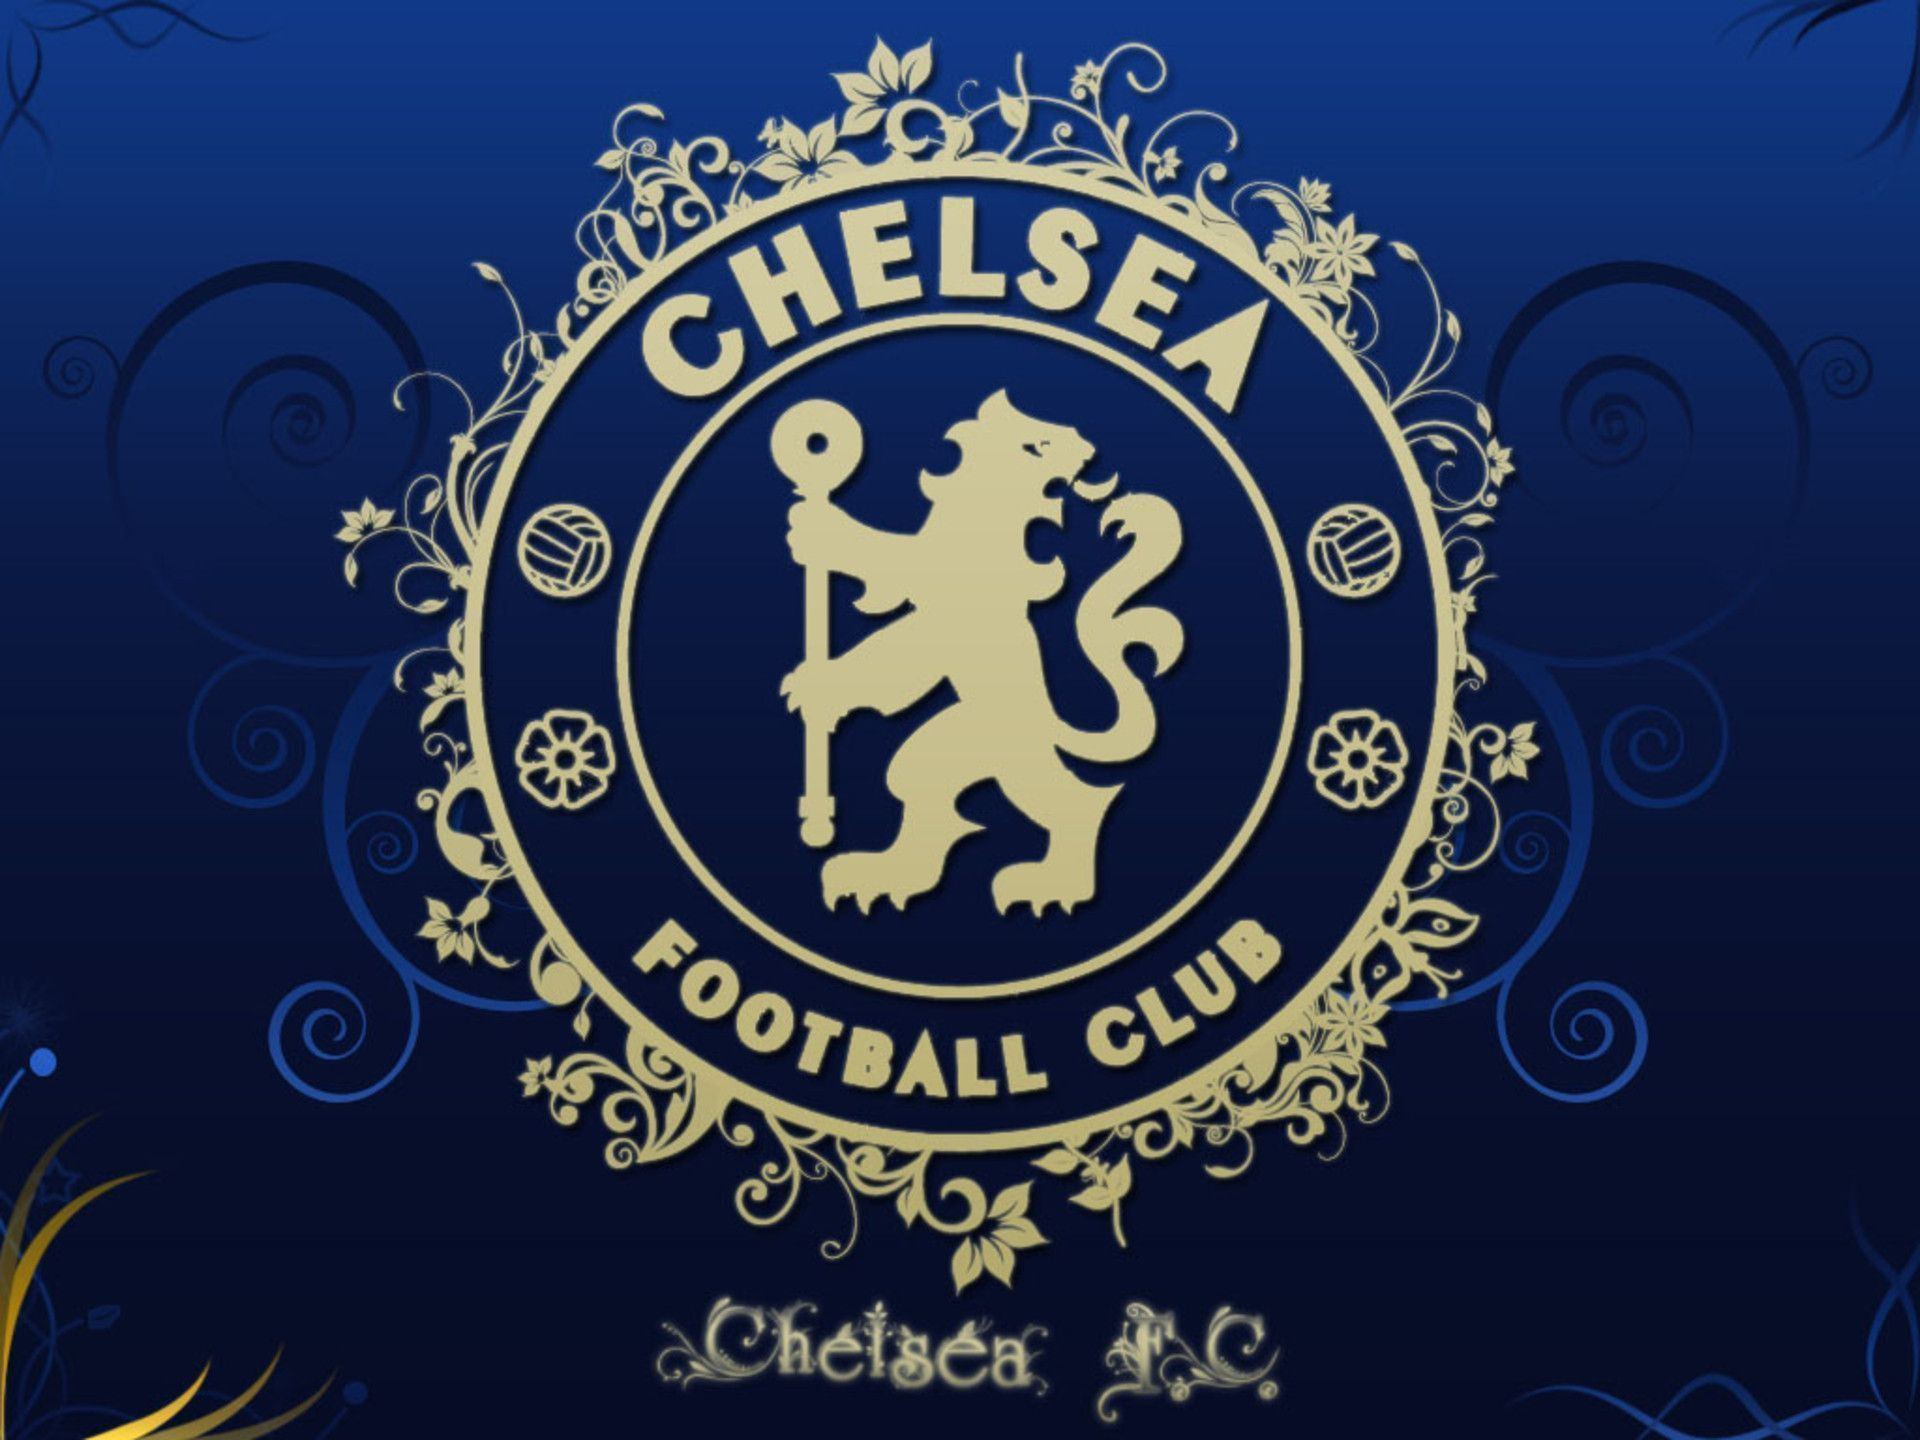 Images about chelsea project on pinterest chelsea fc 5761024 images about chelsea project on pinterest chelsea fc 5761024 wallpaper chelsea 54 wallpapers voltagebd